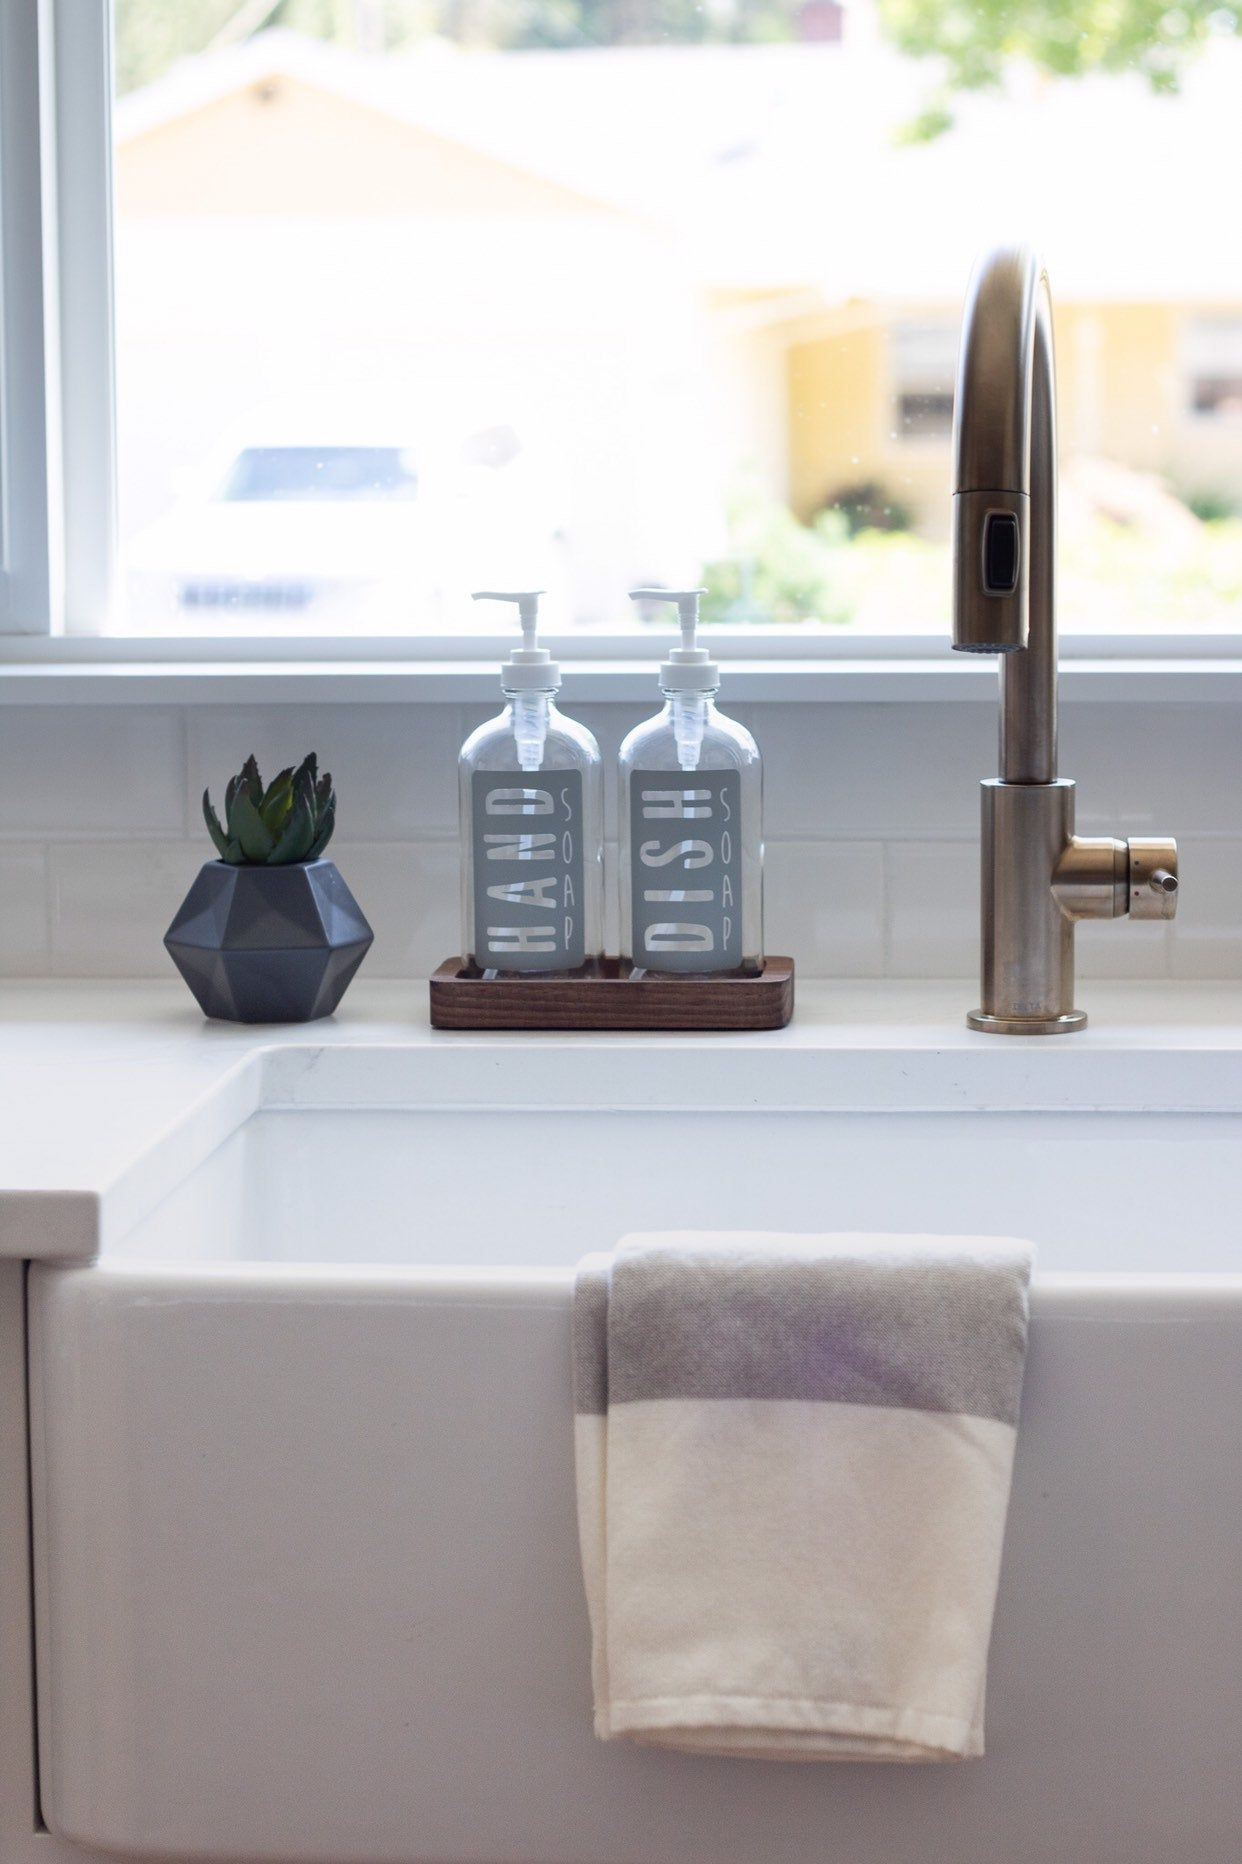 Bathroom Soap Dispenser, Bathroom Soap Dispenser Set With Tray